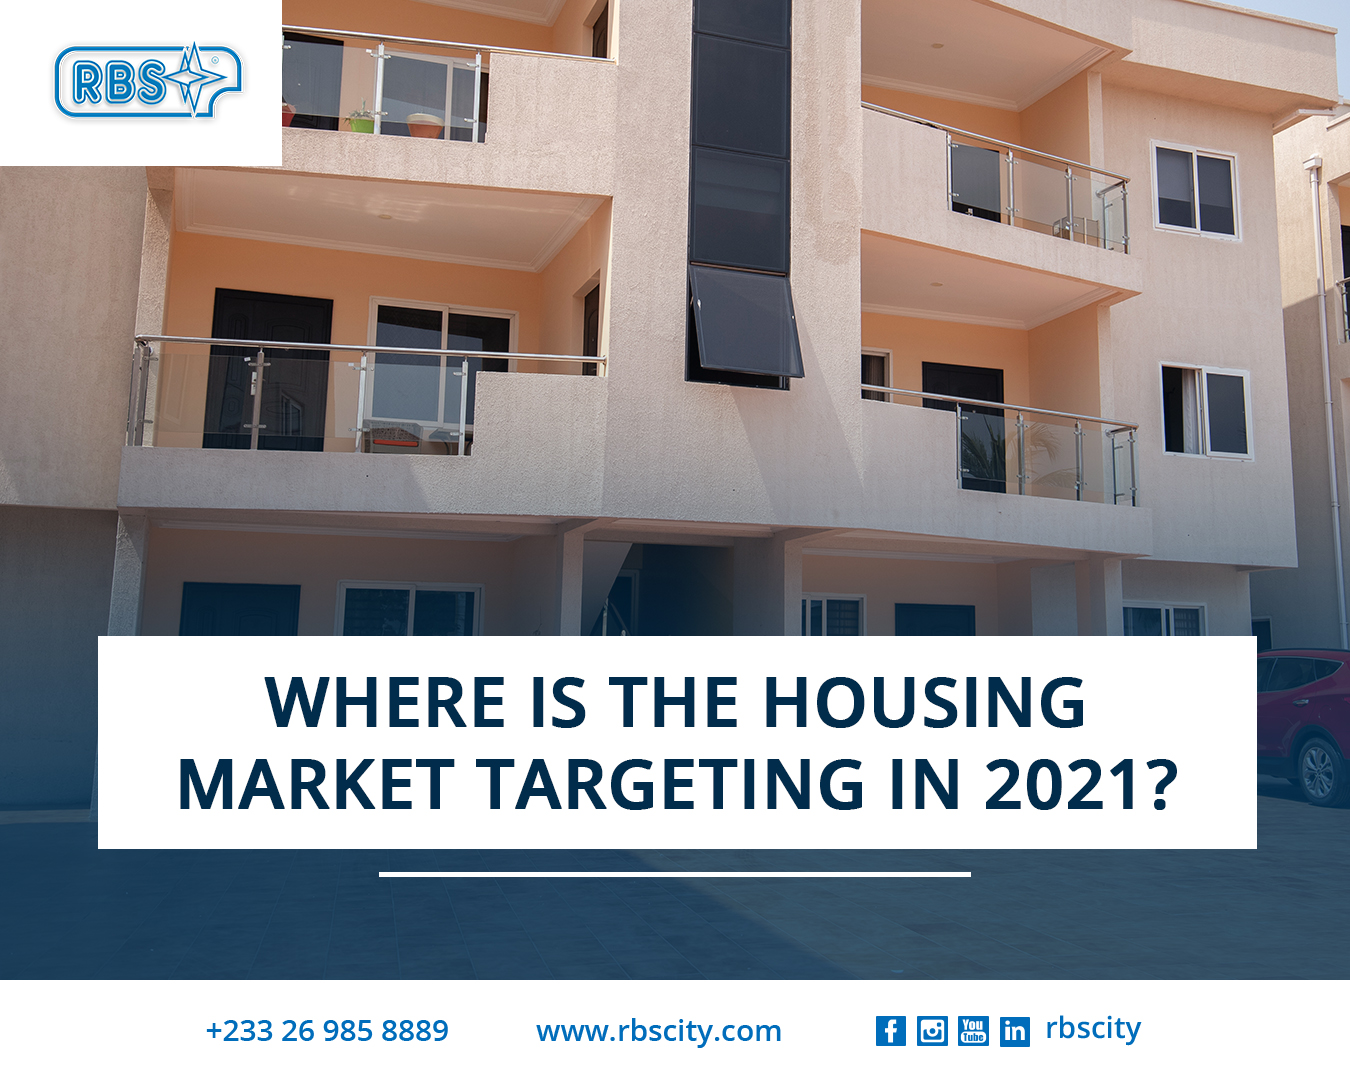 Where is the Housing Market Targeting in 2021?